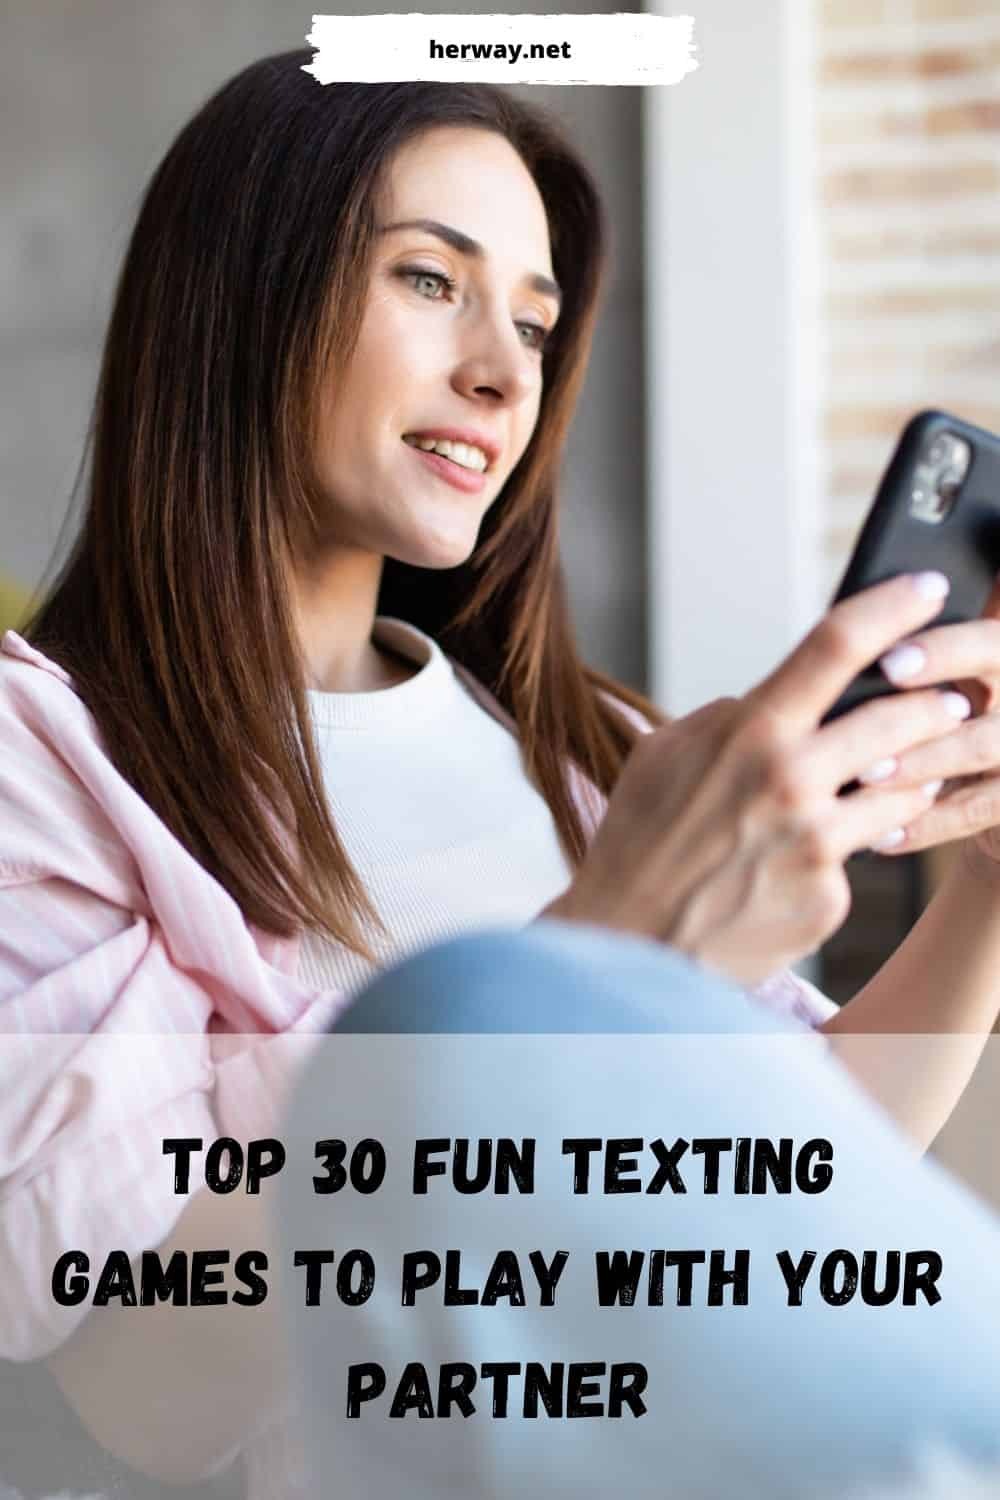 Top 30 Fun Texting Games To Play With Your Partner